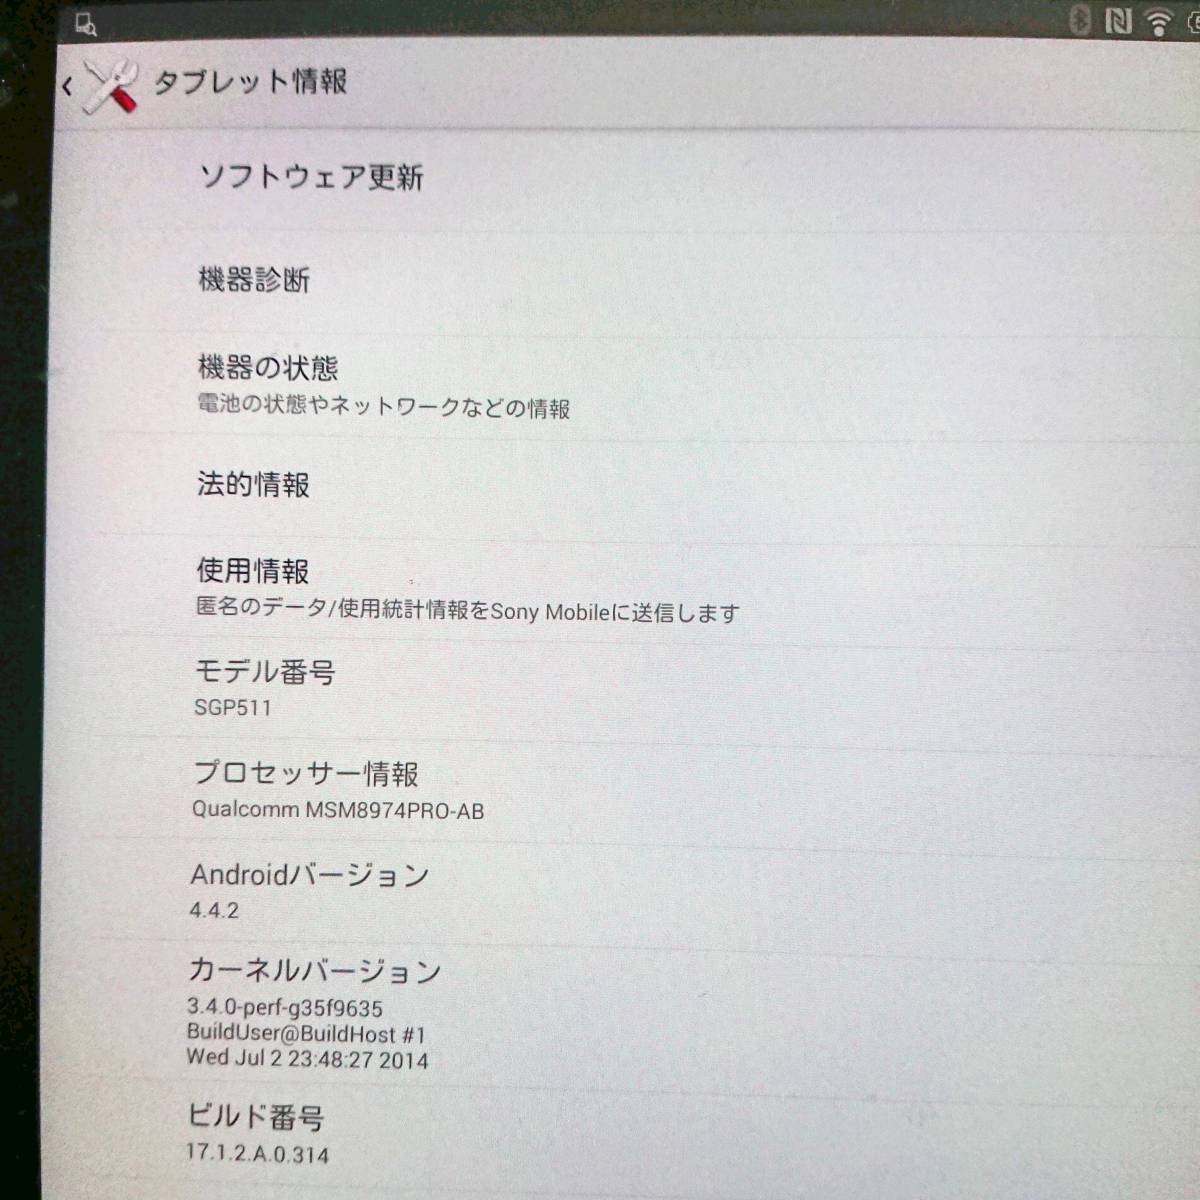 Xperia Z2 Tablet SGP511 WiFiモデル 10インチ タブレット【元箱・付属品付き美品】_画像9